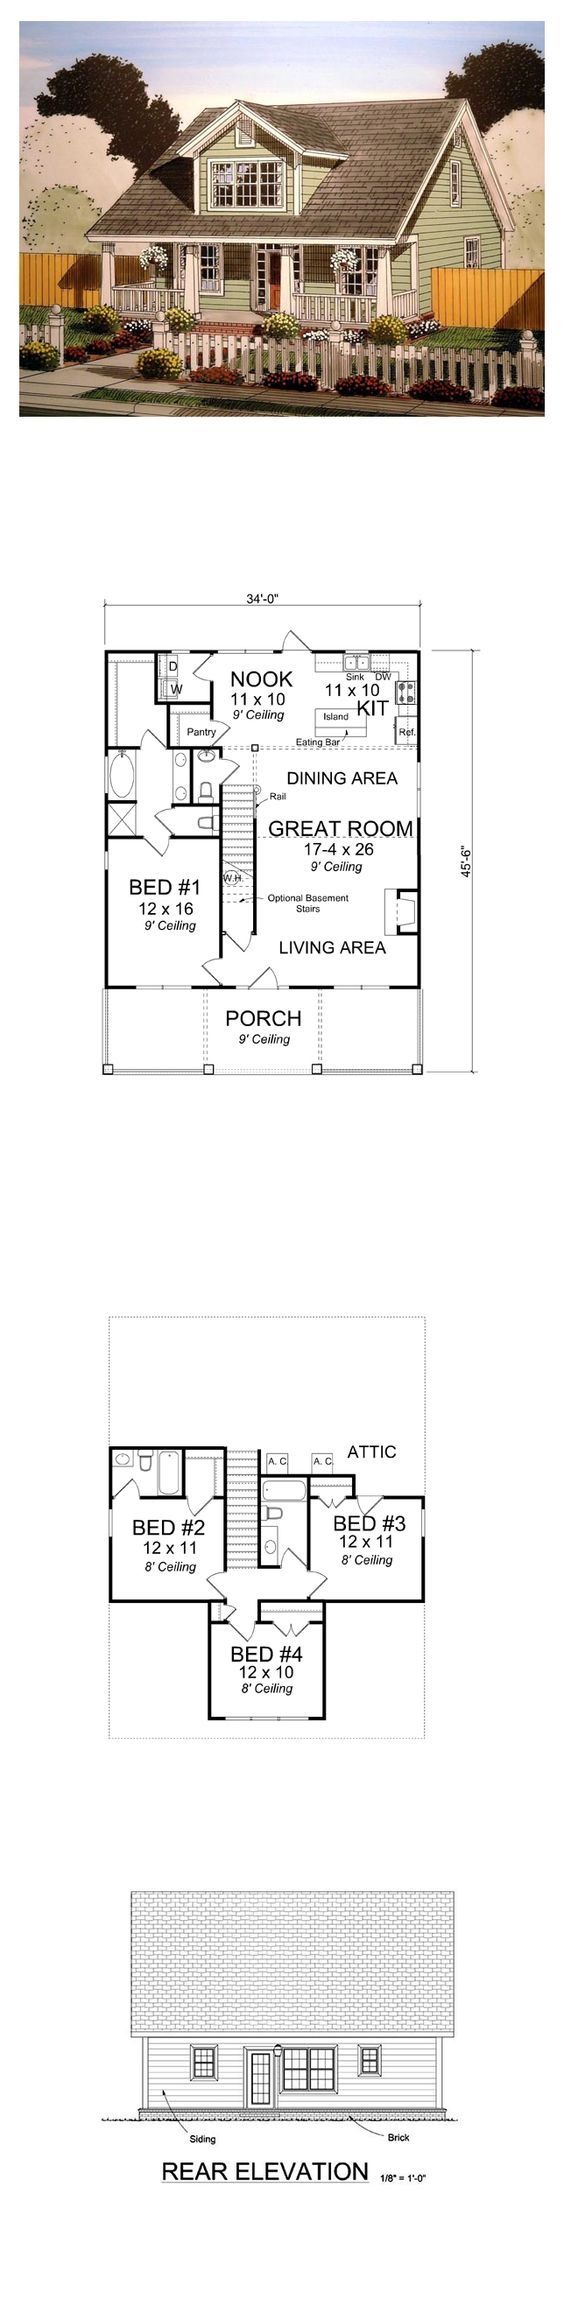 Cape Cod Country House Plan 61403 Cape